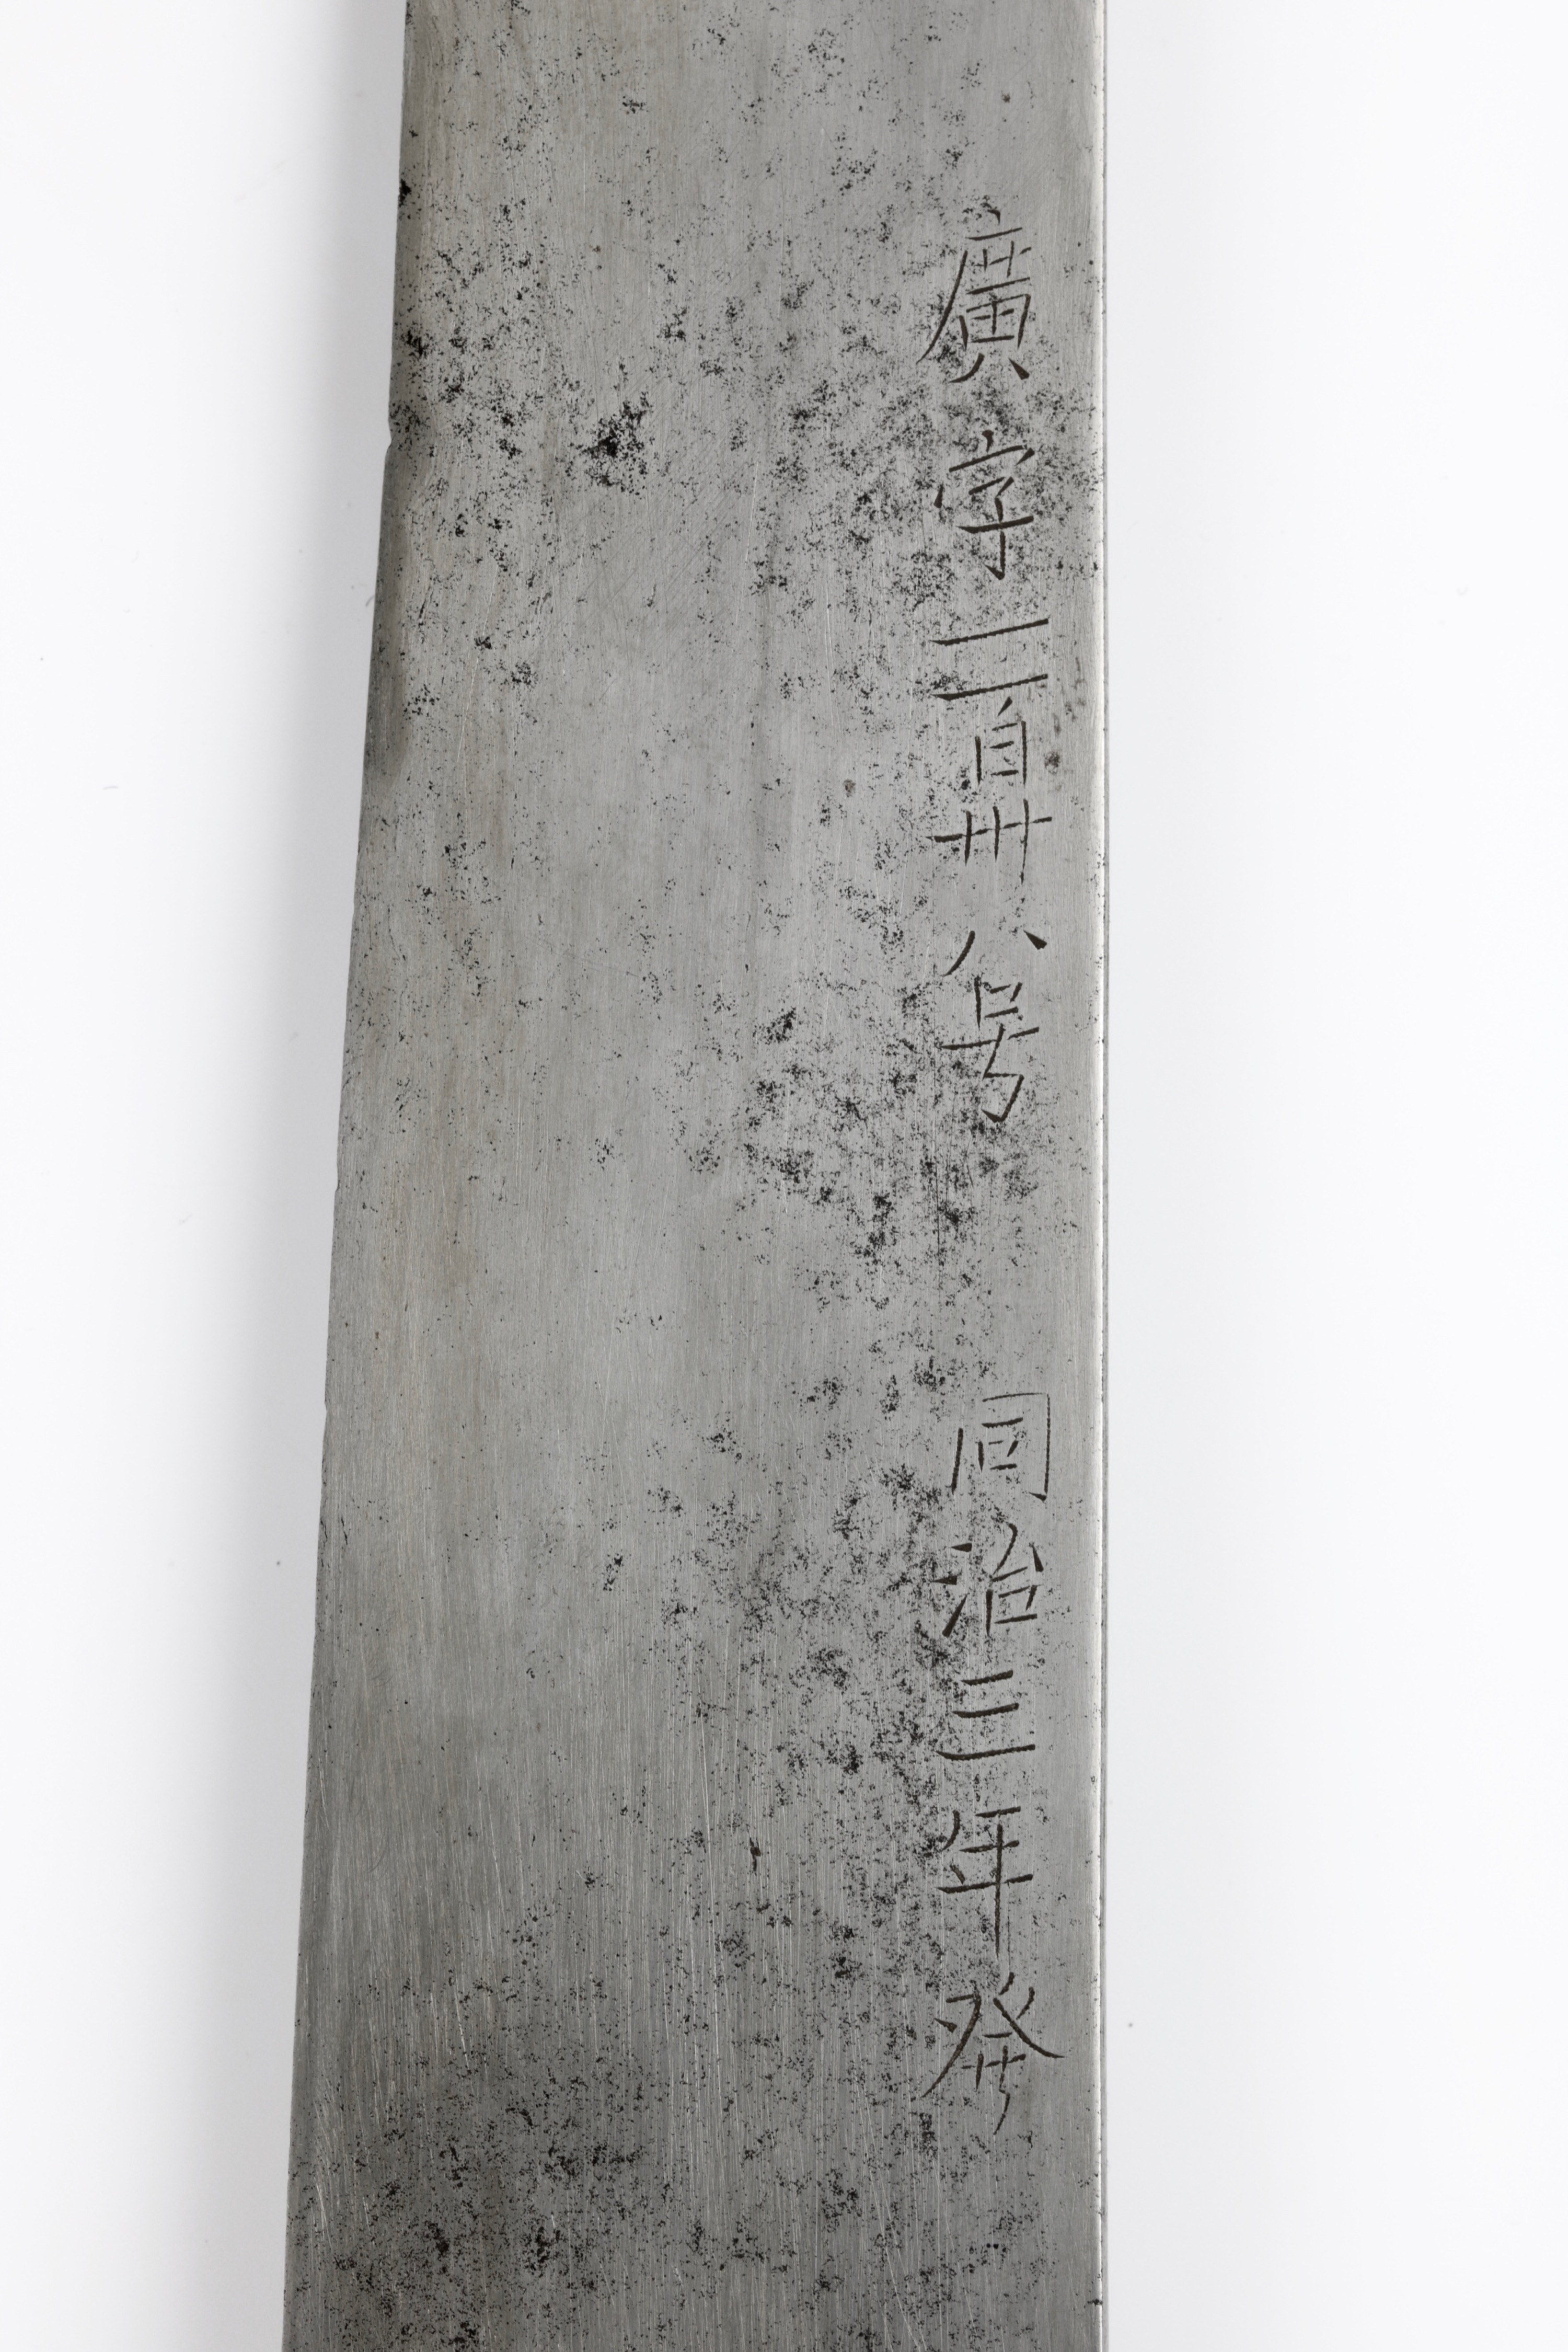 Marking on a Chinese shield sword